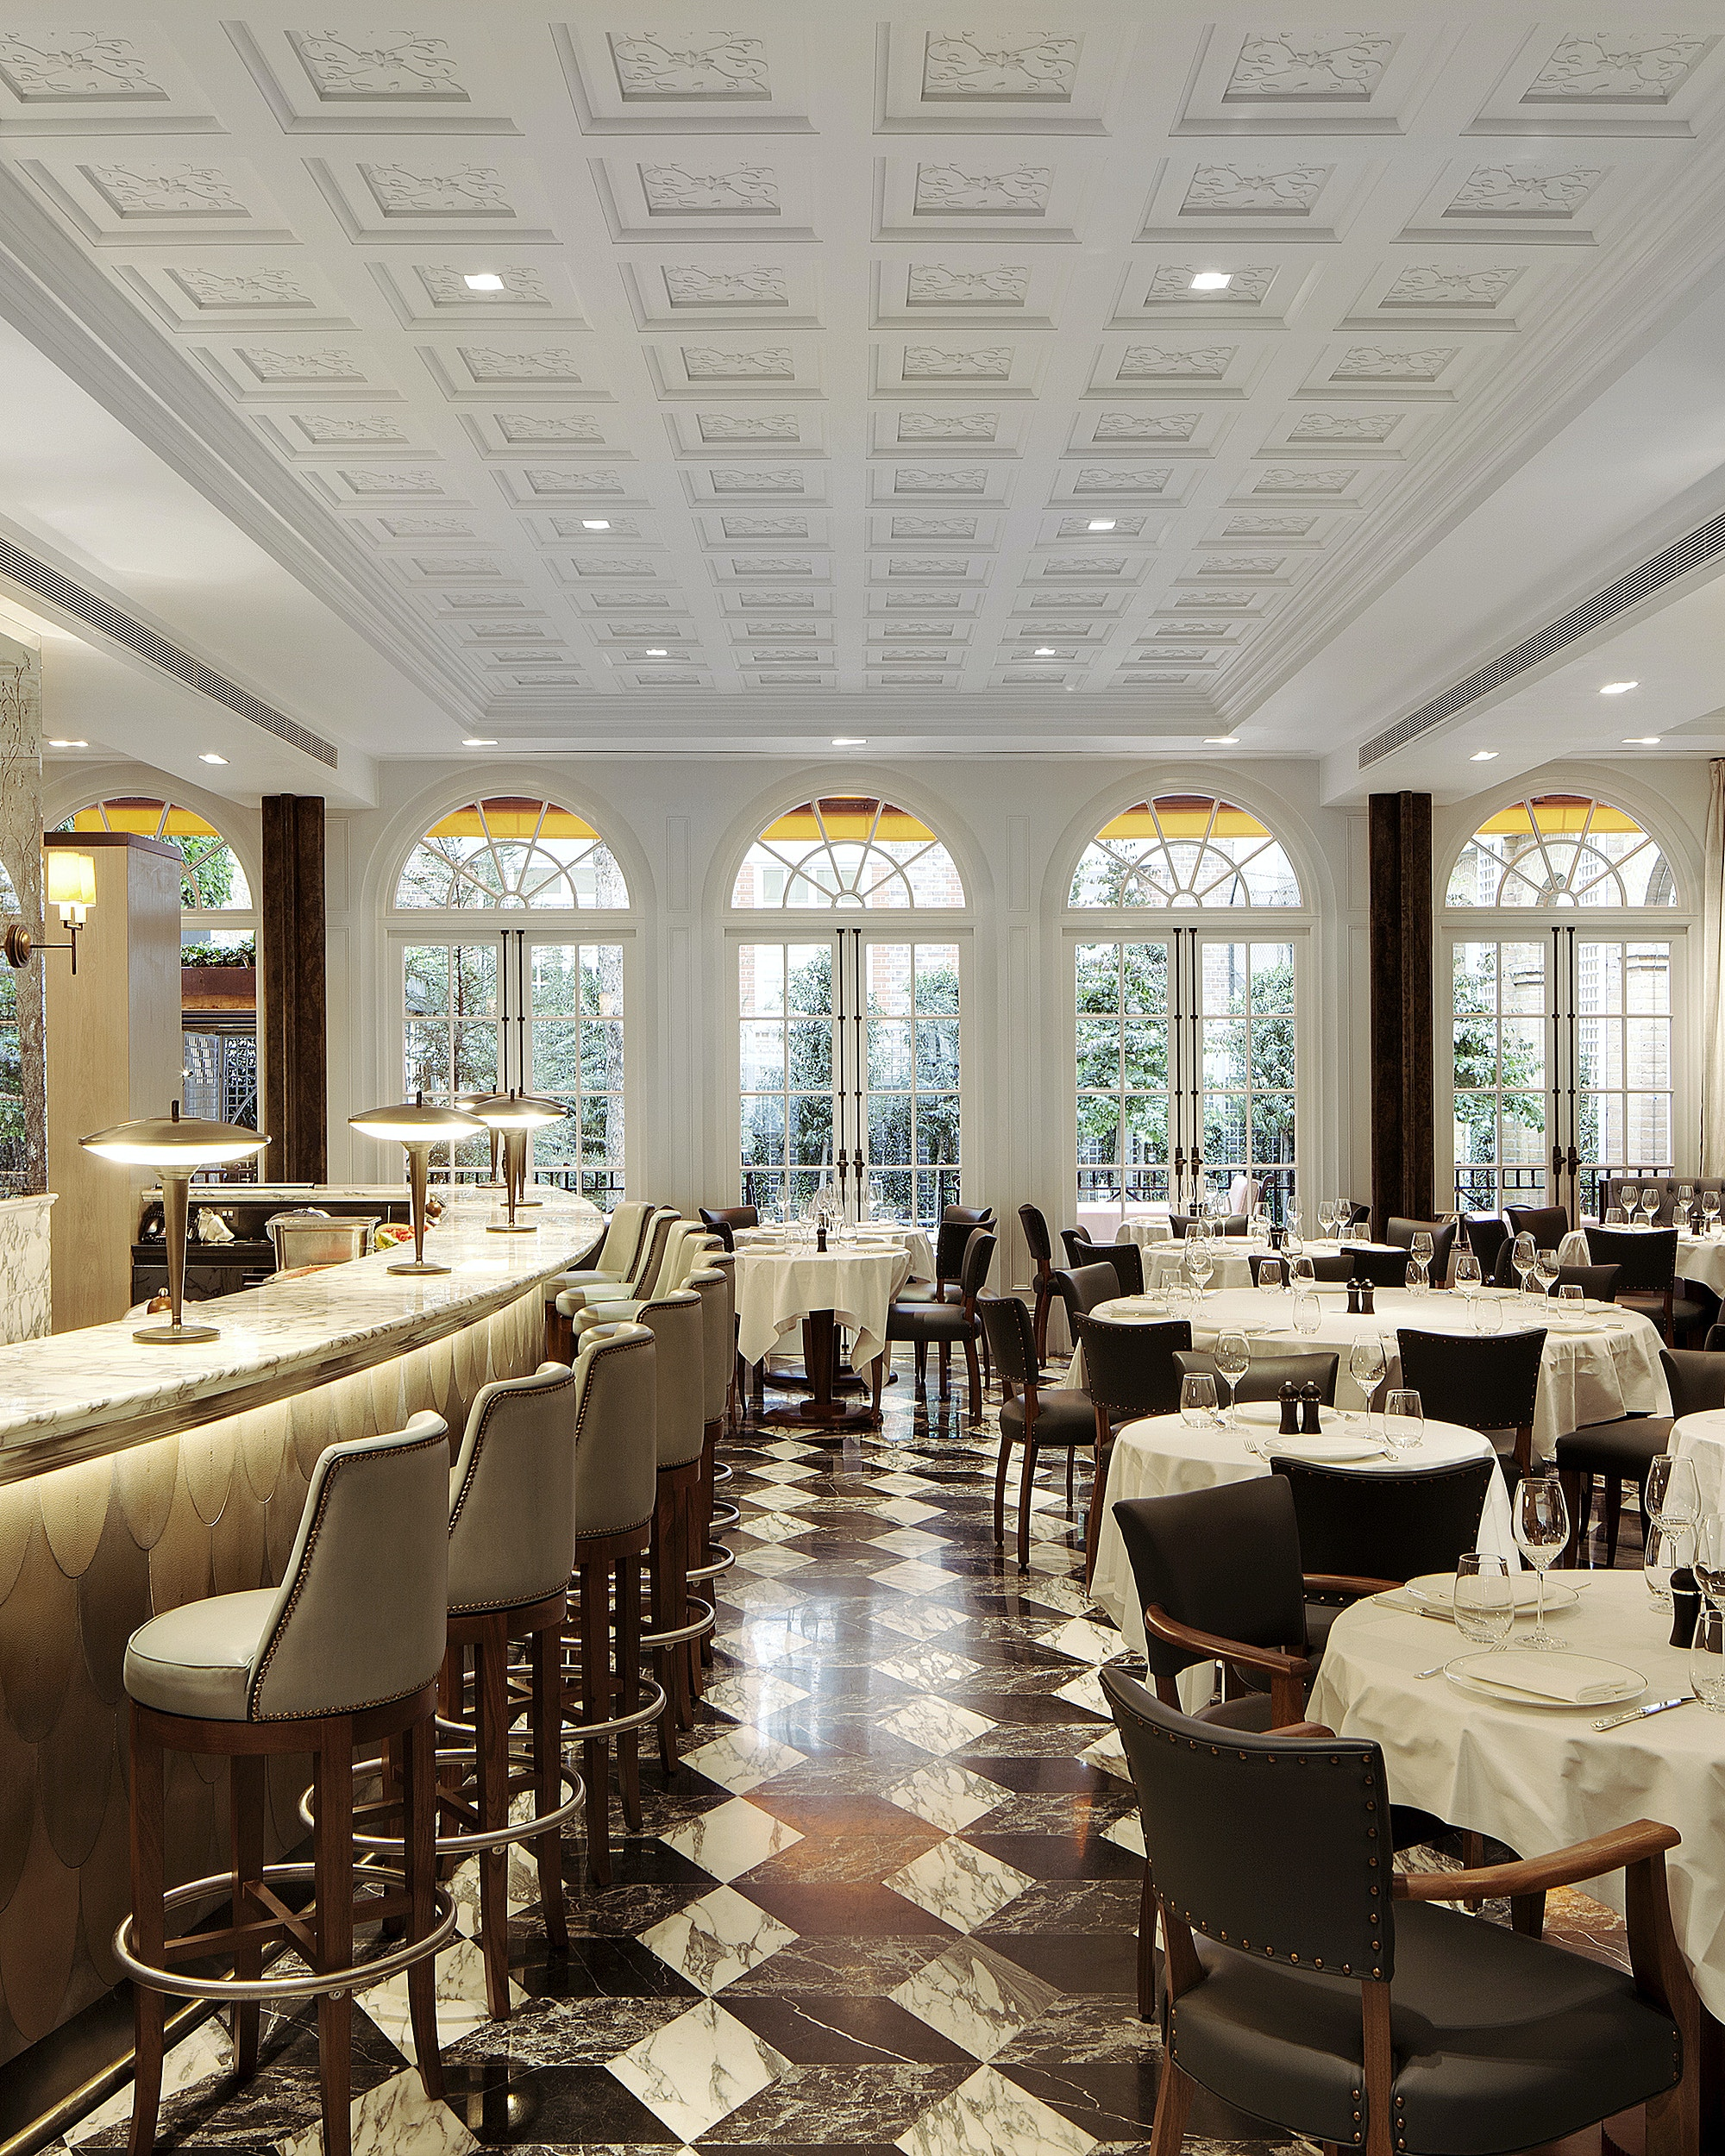 arts-club-london-architecture-dining